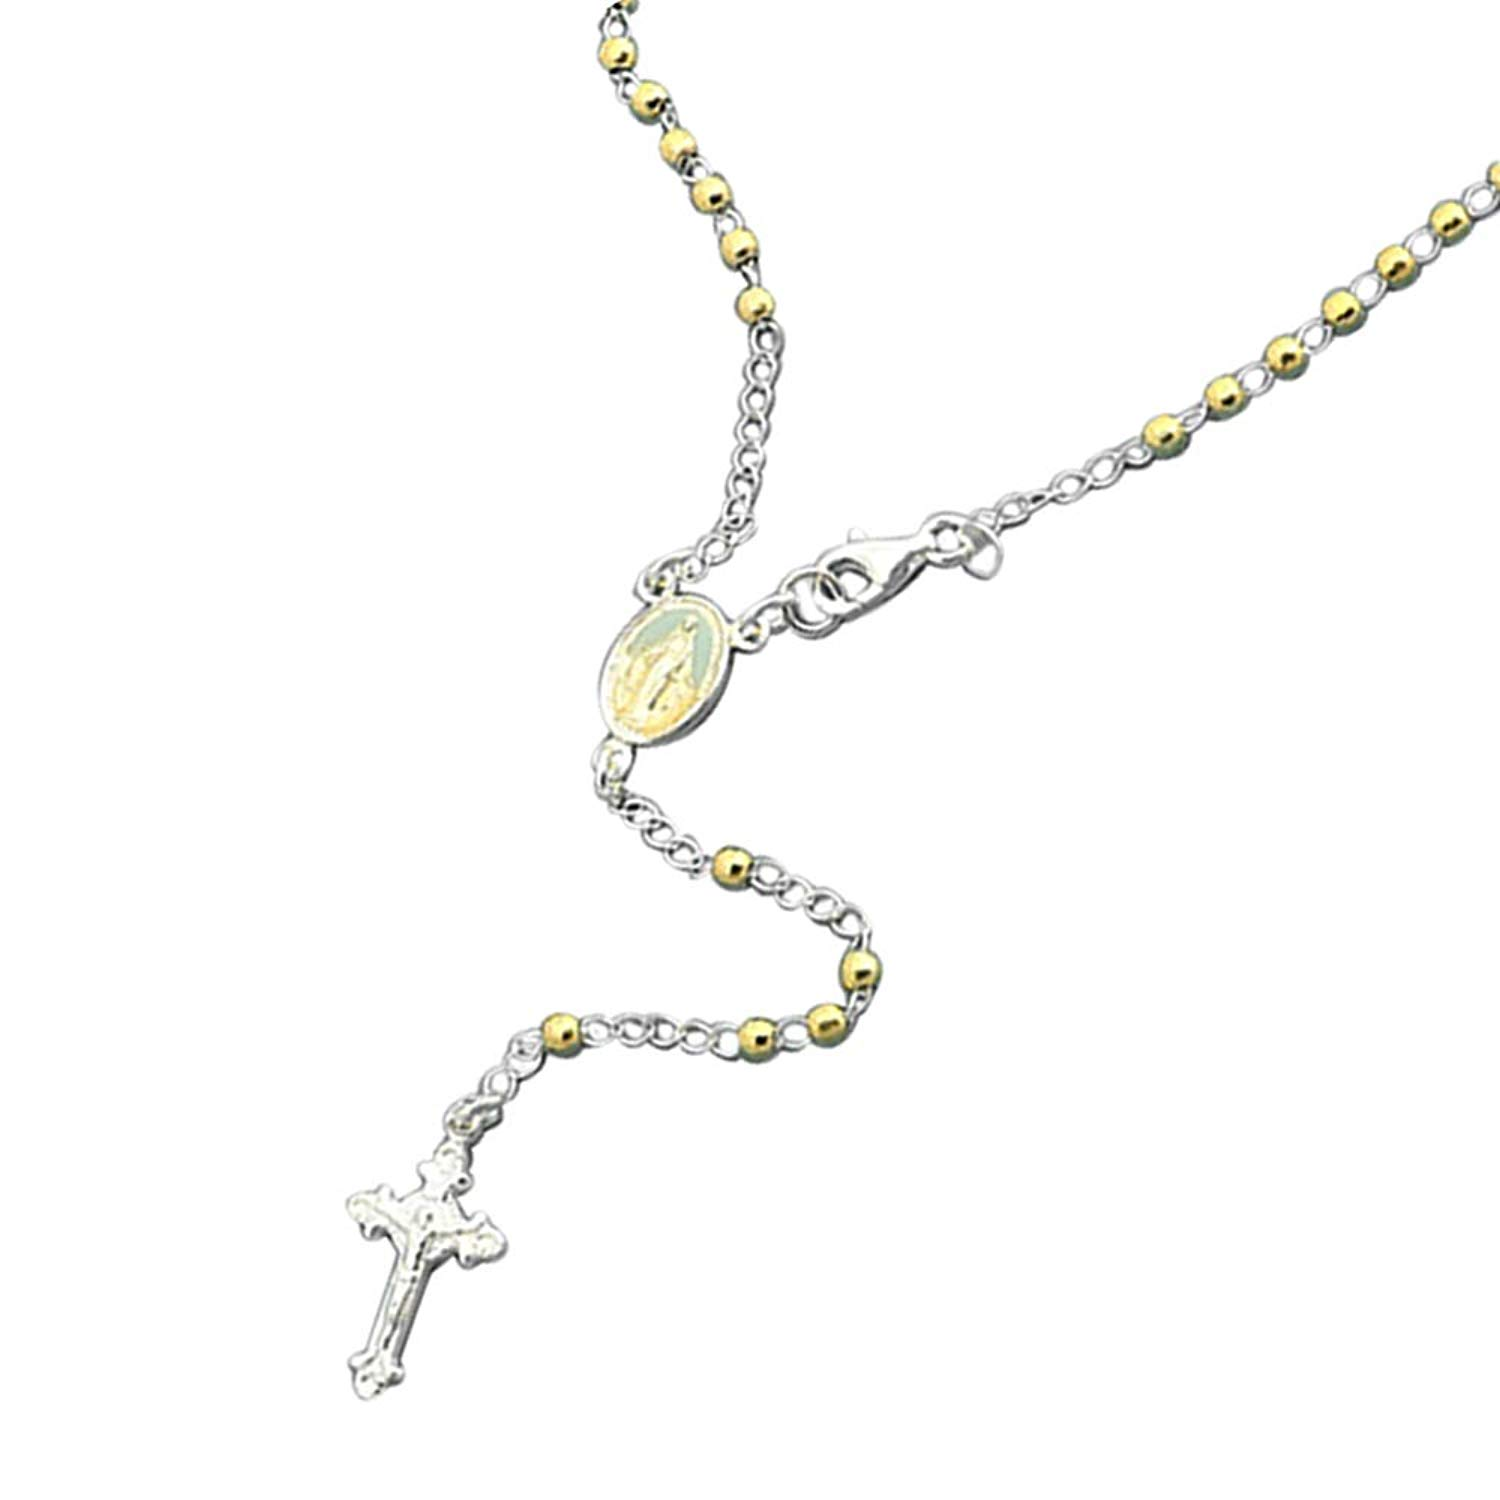 14K Yellow Gold Plated Sterling Silver Rosary Necklace 2.5mm DC Bead Cross Rosary Chain (18~26 Inches)